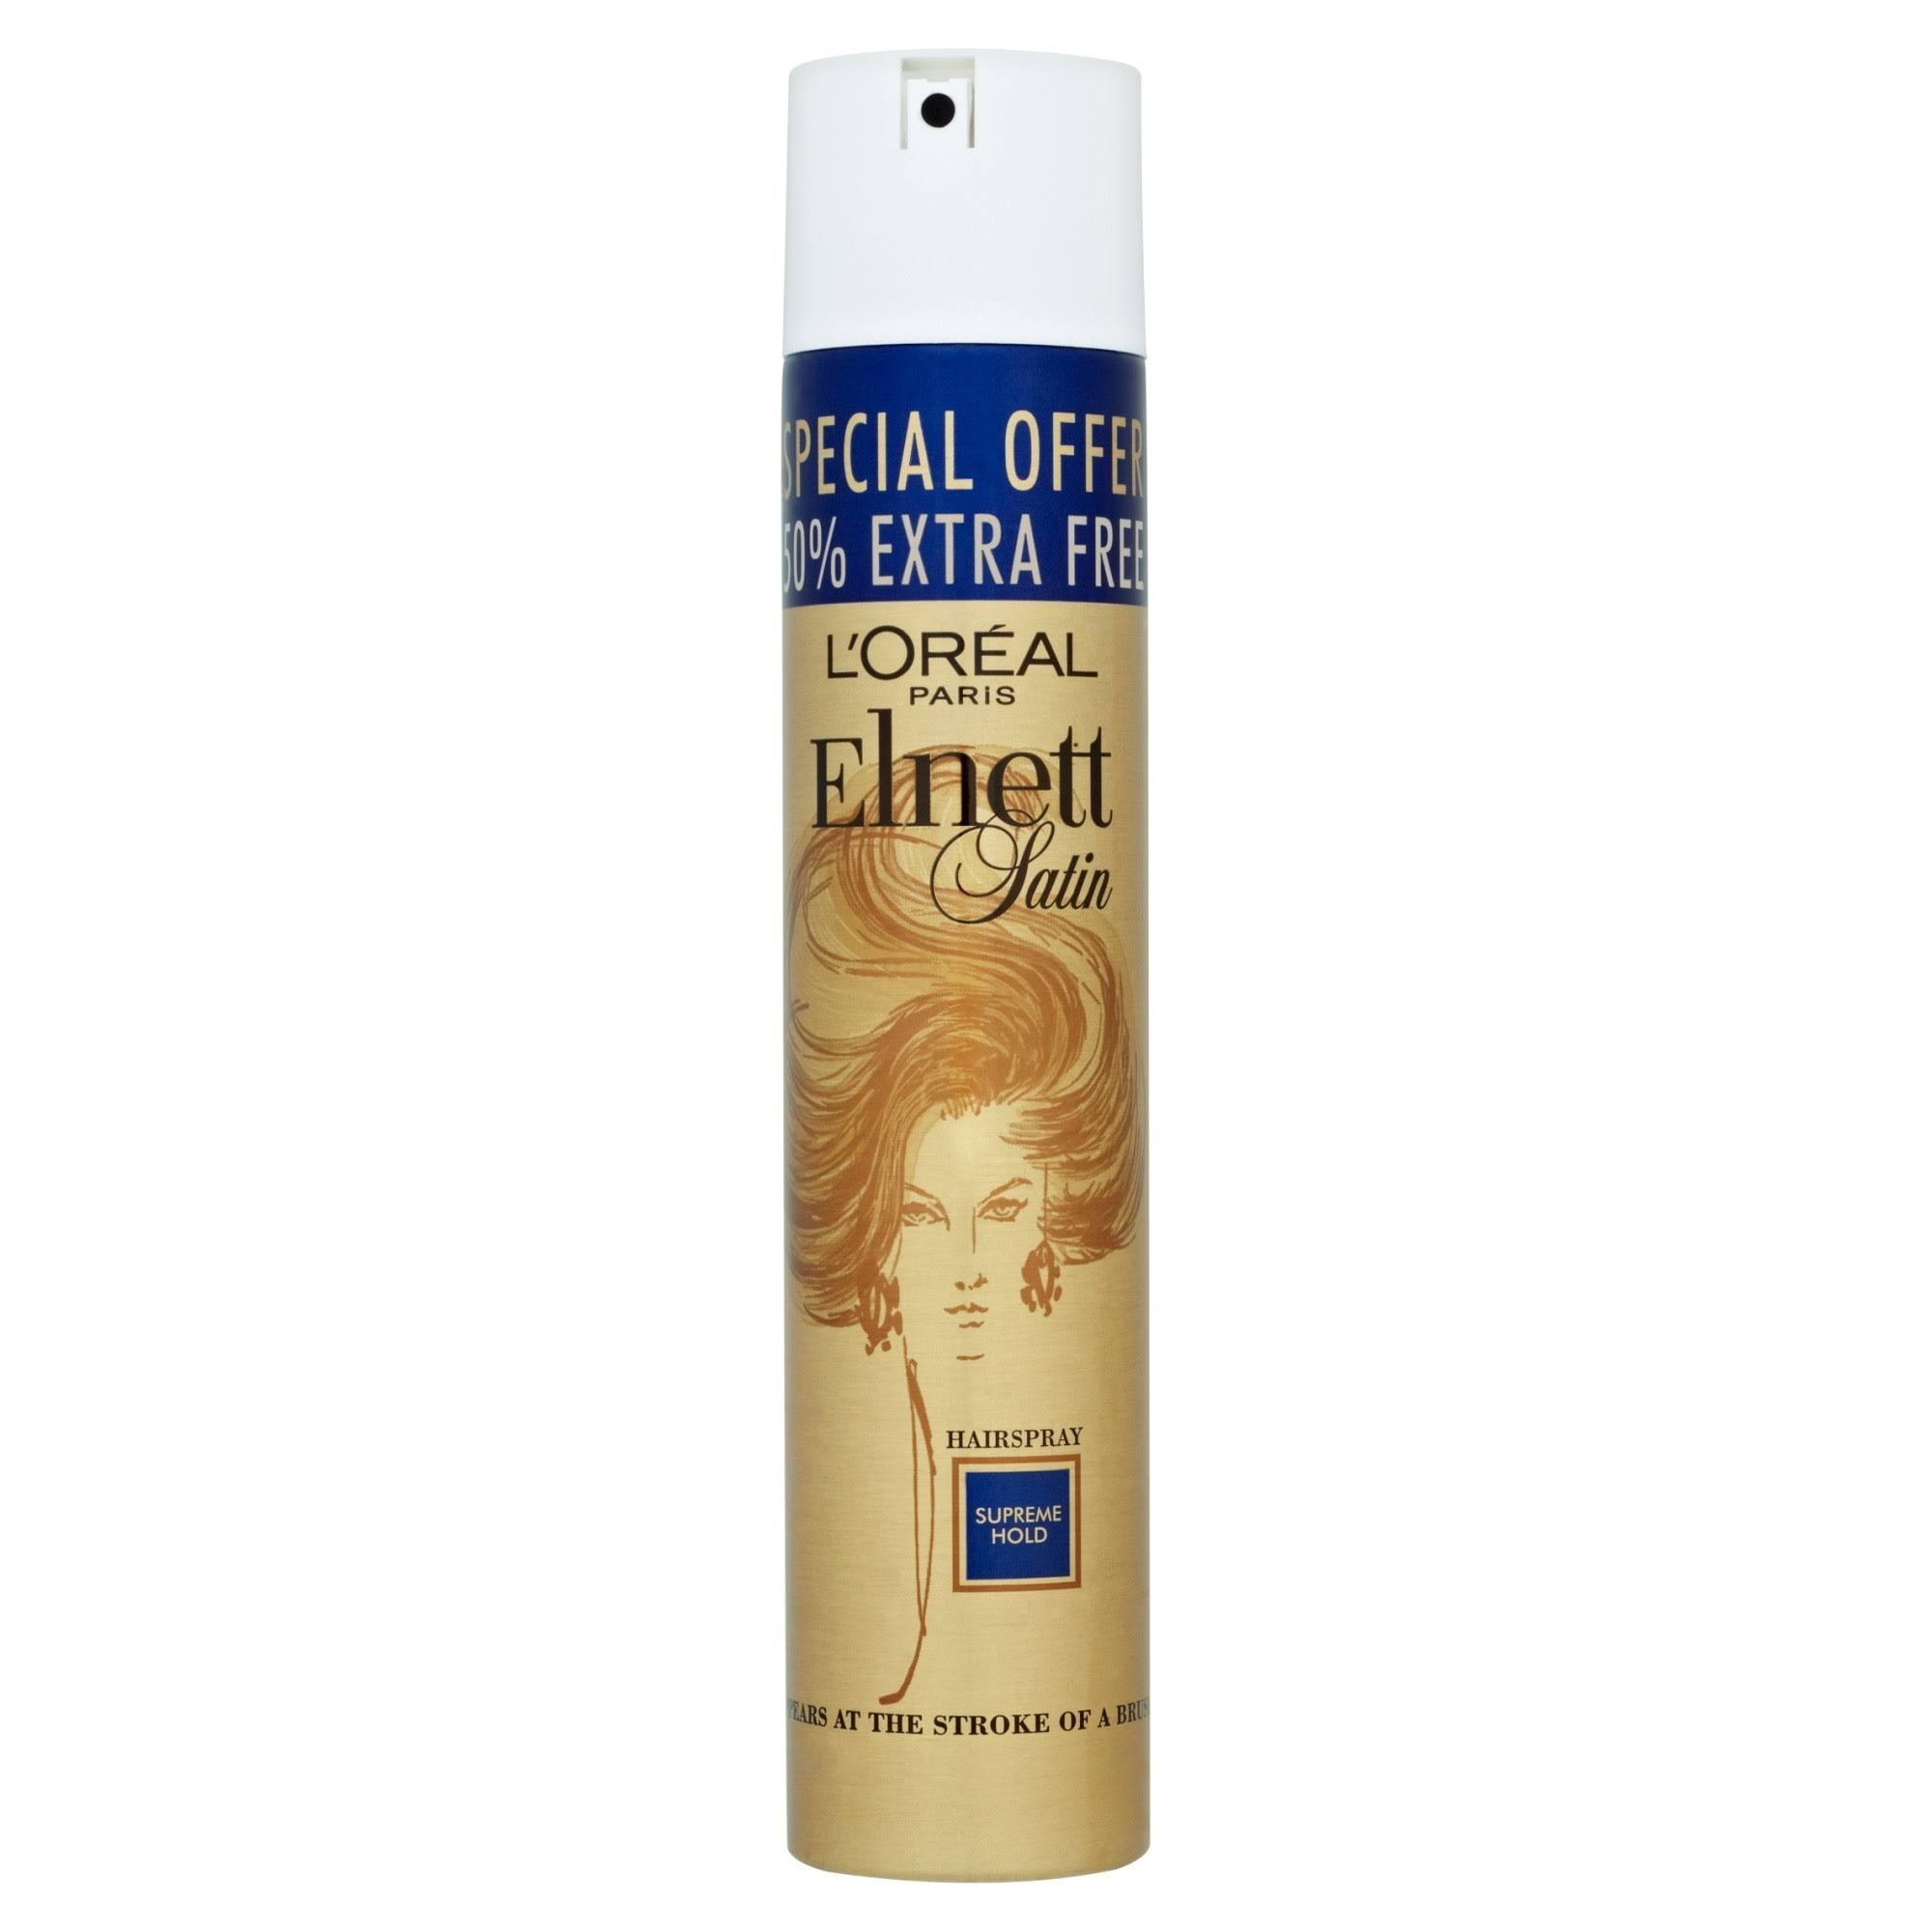 L'Oreal Elnett Satin Hairspray - Supreme Hold, 300ml